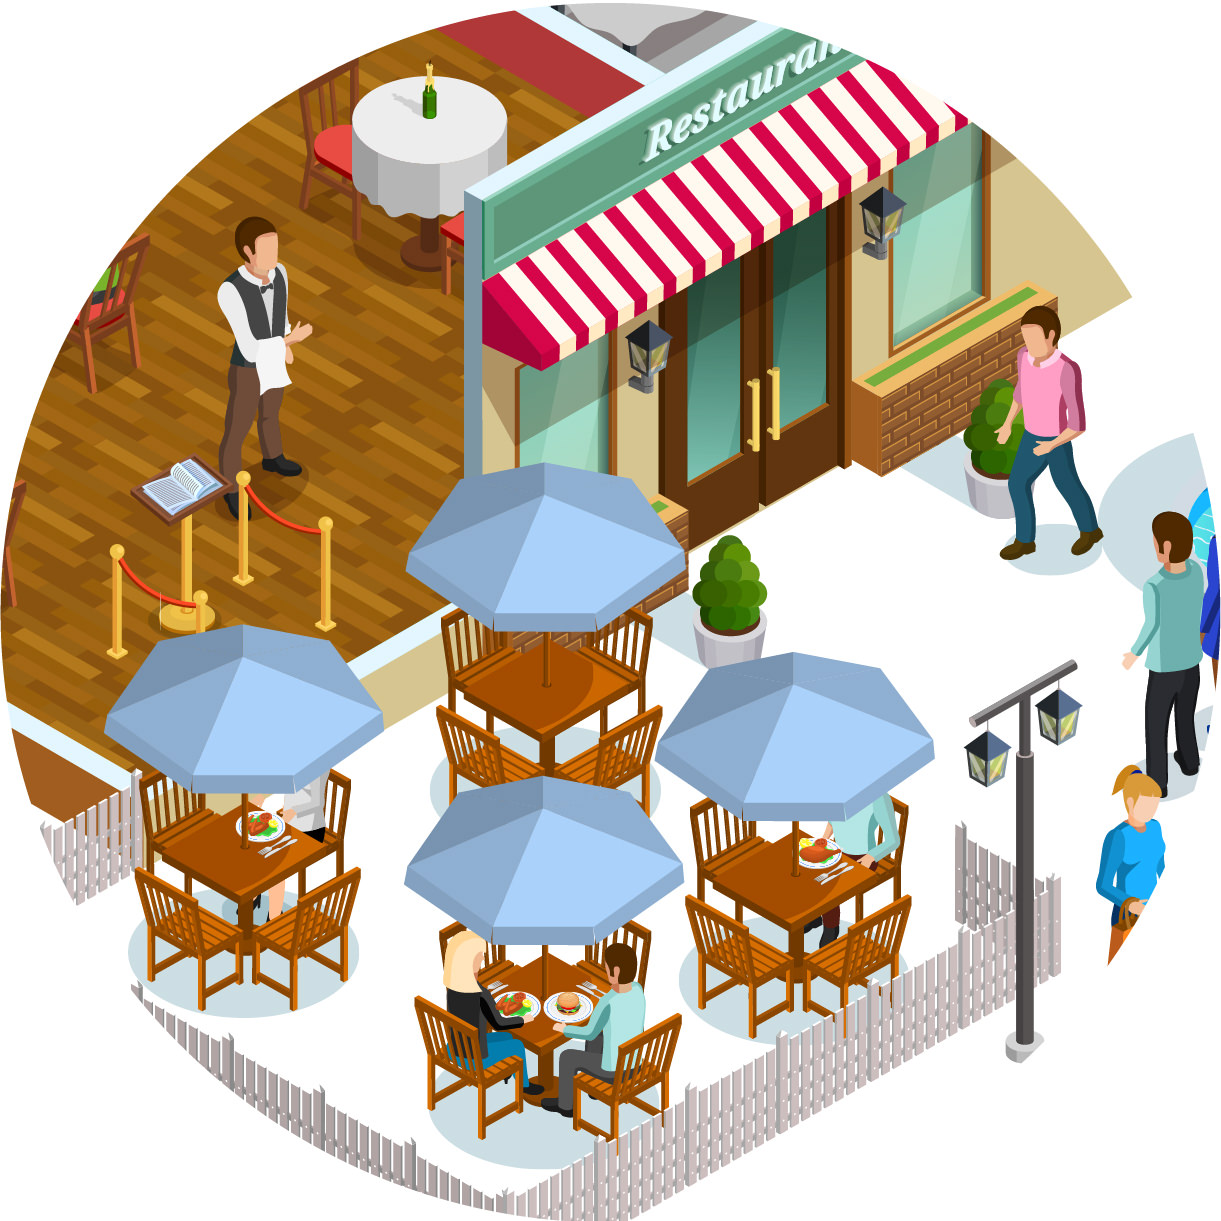 Bottom right detail of the restaurant illustration with sensor location dots on the patio